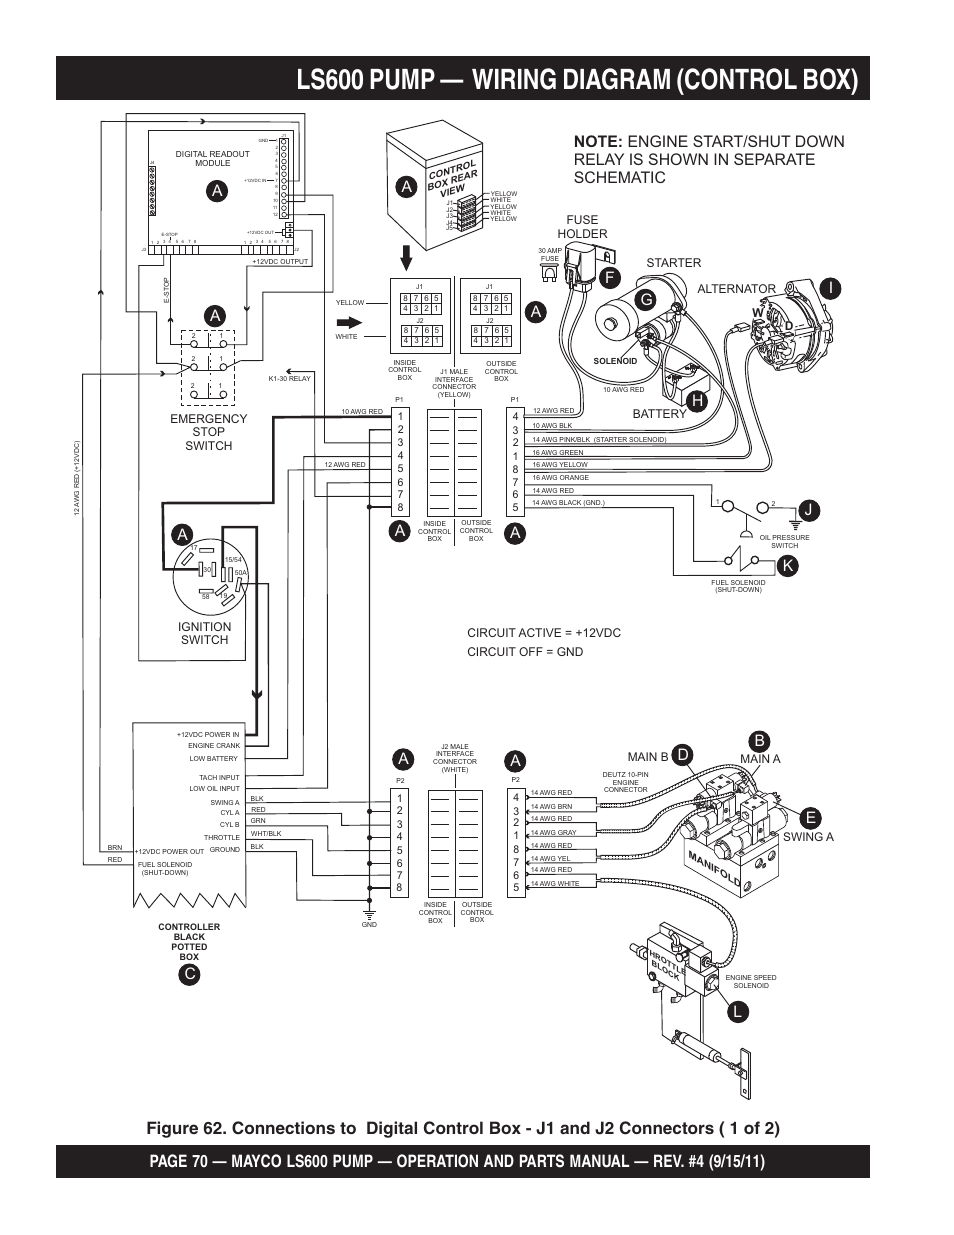 ignition switch wiring diagram 2003 chevy cavalier parts ls600 pump — (control box), bd e e, fuse holder | multiquip mayco concrete ...